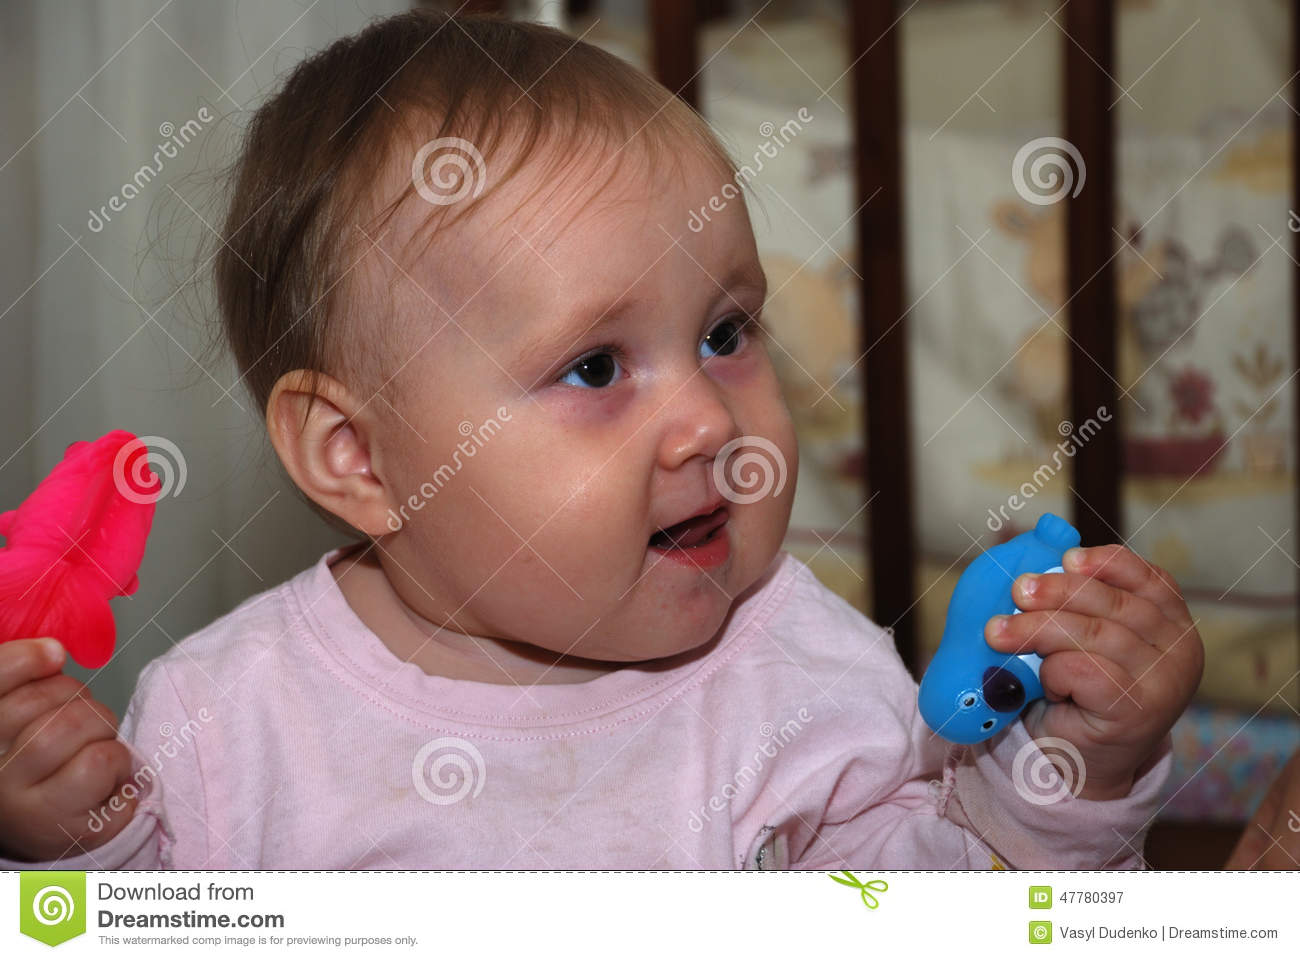 Funny Smiling Baby Stock Photo - Image: 47780397